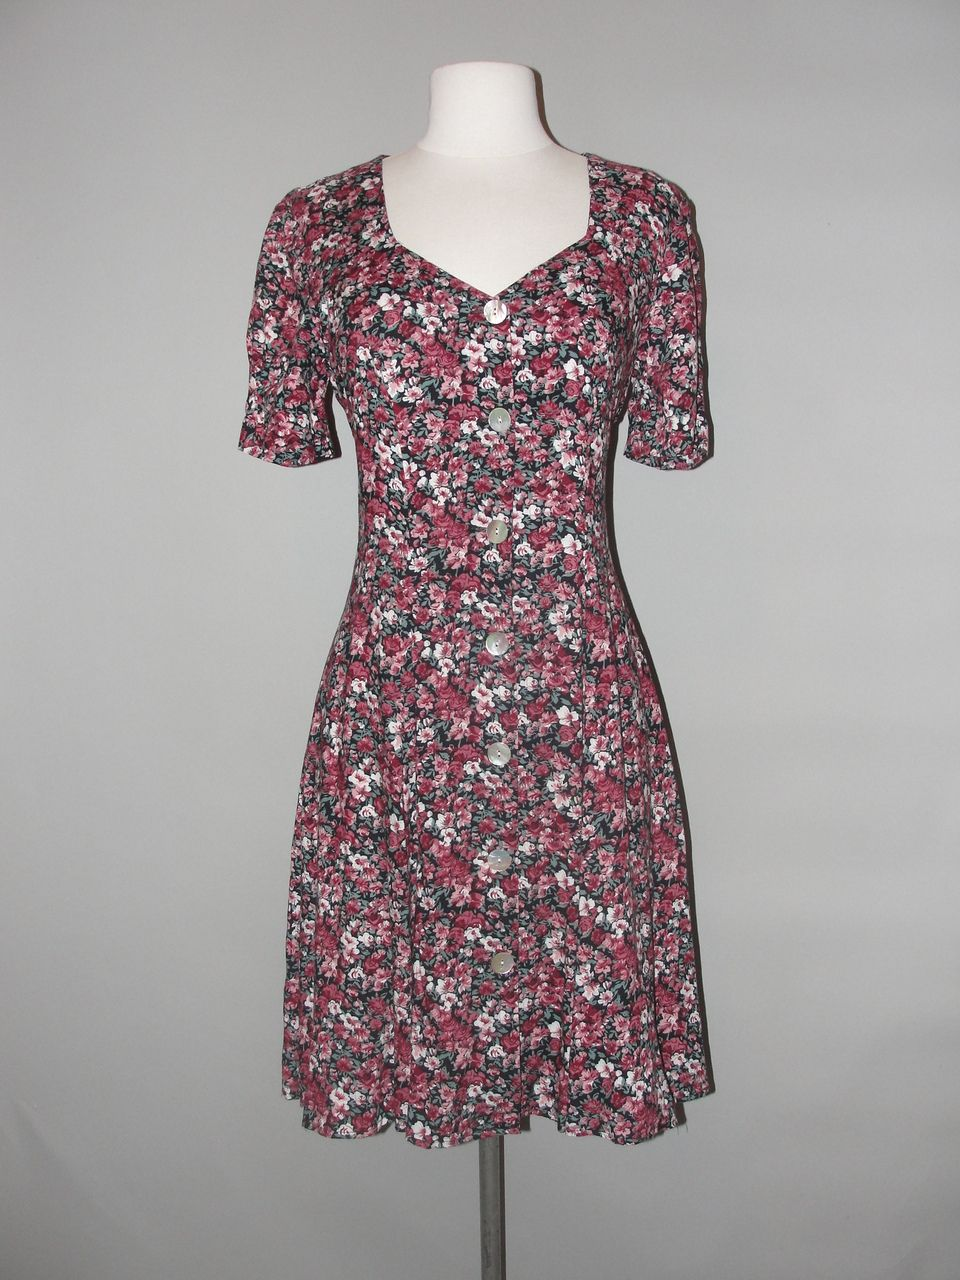 438c05d0f9d Wholesale Vintage Clothing - Vintage 80 s 90 s mini floral dress WHOLESALE  BULK